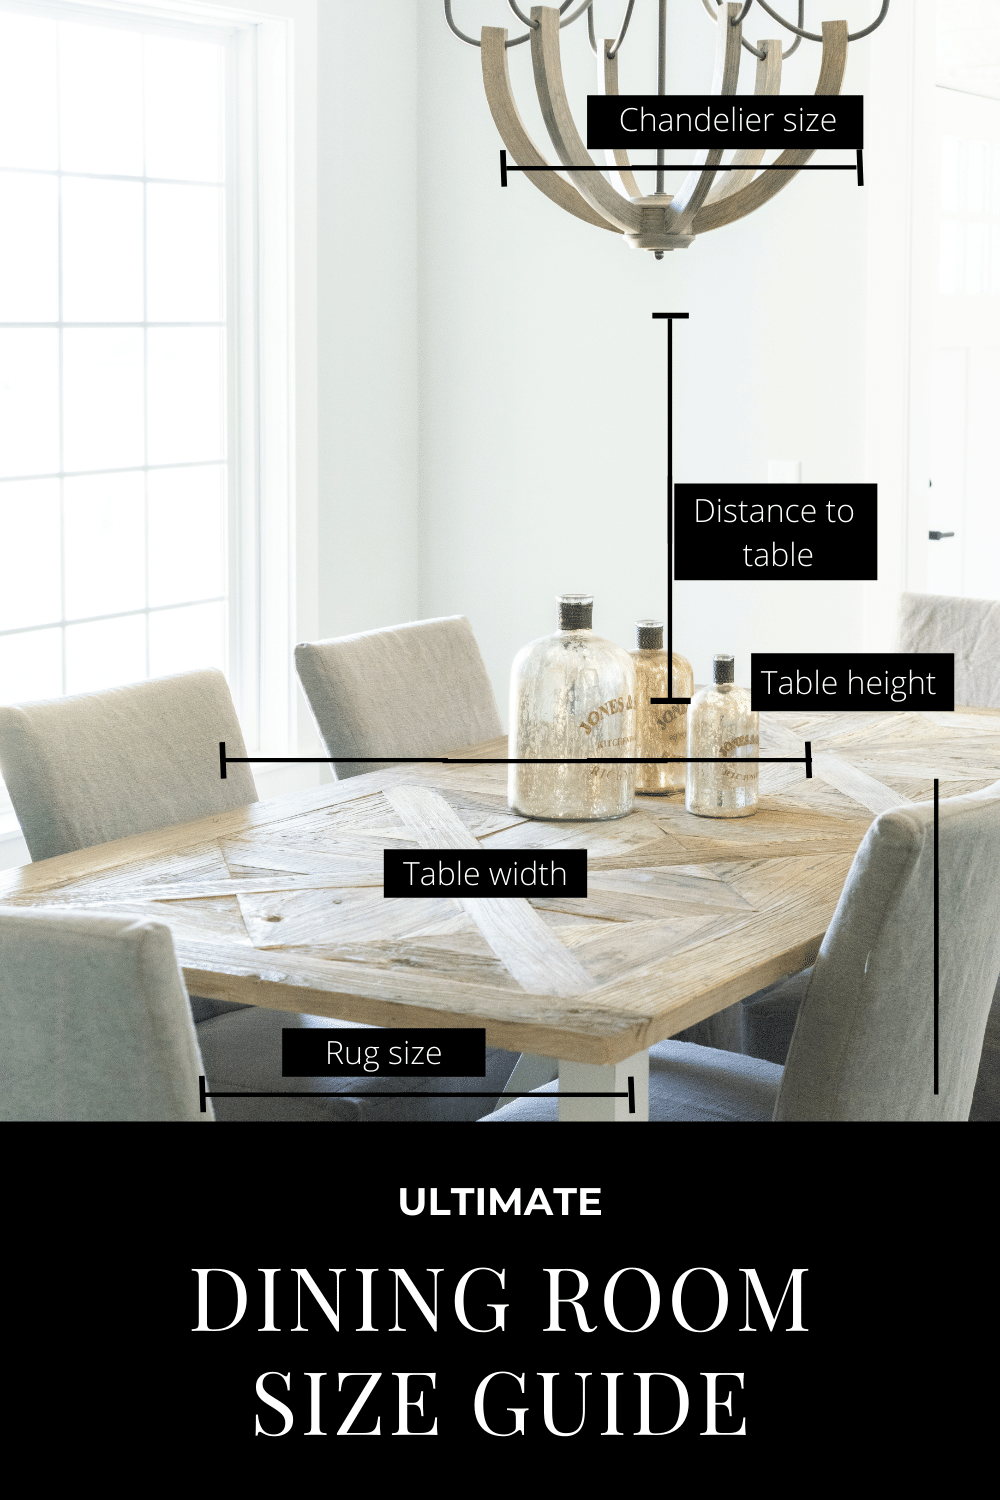 Ultimate Dining Room Size Guide and Measurement Cheat Sheet